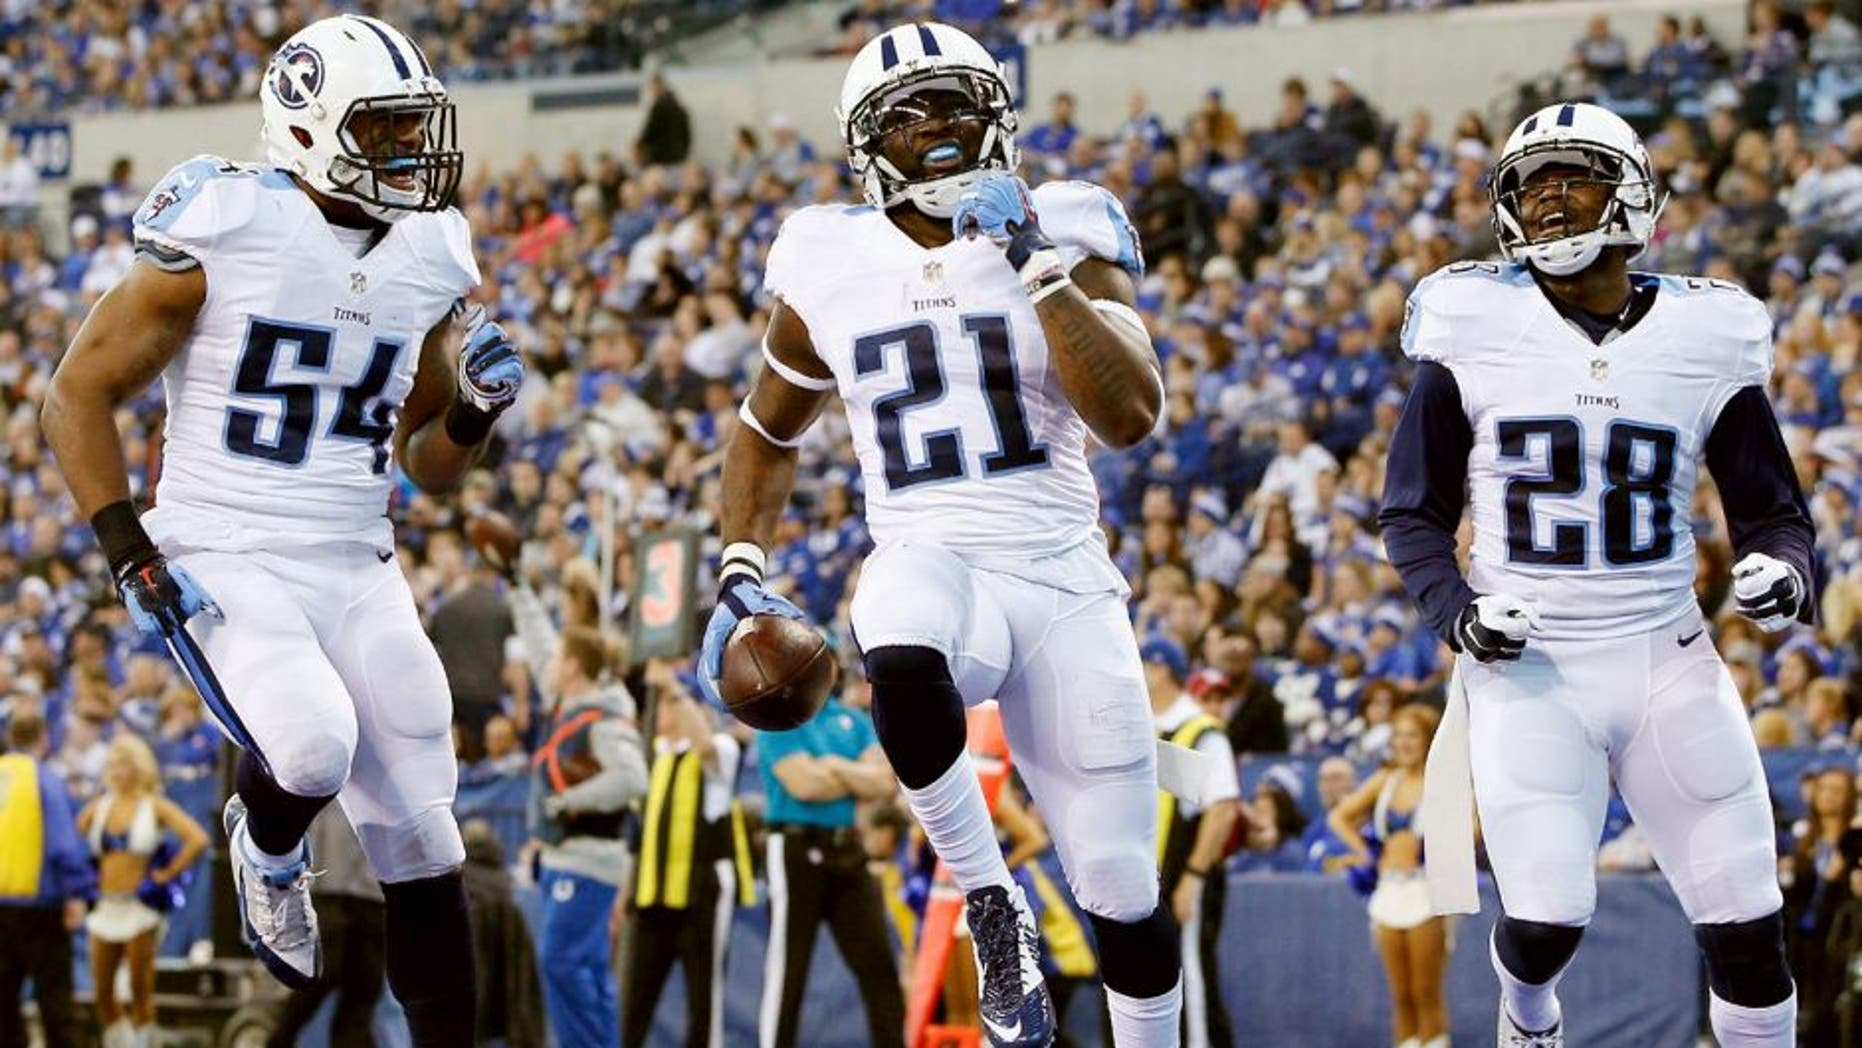 INDIANAPOLIS, IN - JANUARY 03: Da'Norris Searcy #21 of the Tennessee Titans celebrates after making an interception against the Indianapolis Colts at Lucas Oil Stadium on January 3, 2016 in Indianapolis, Indiana. (Photo by Joe Robbins/Getty Images)